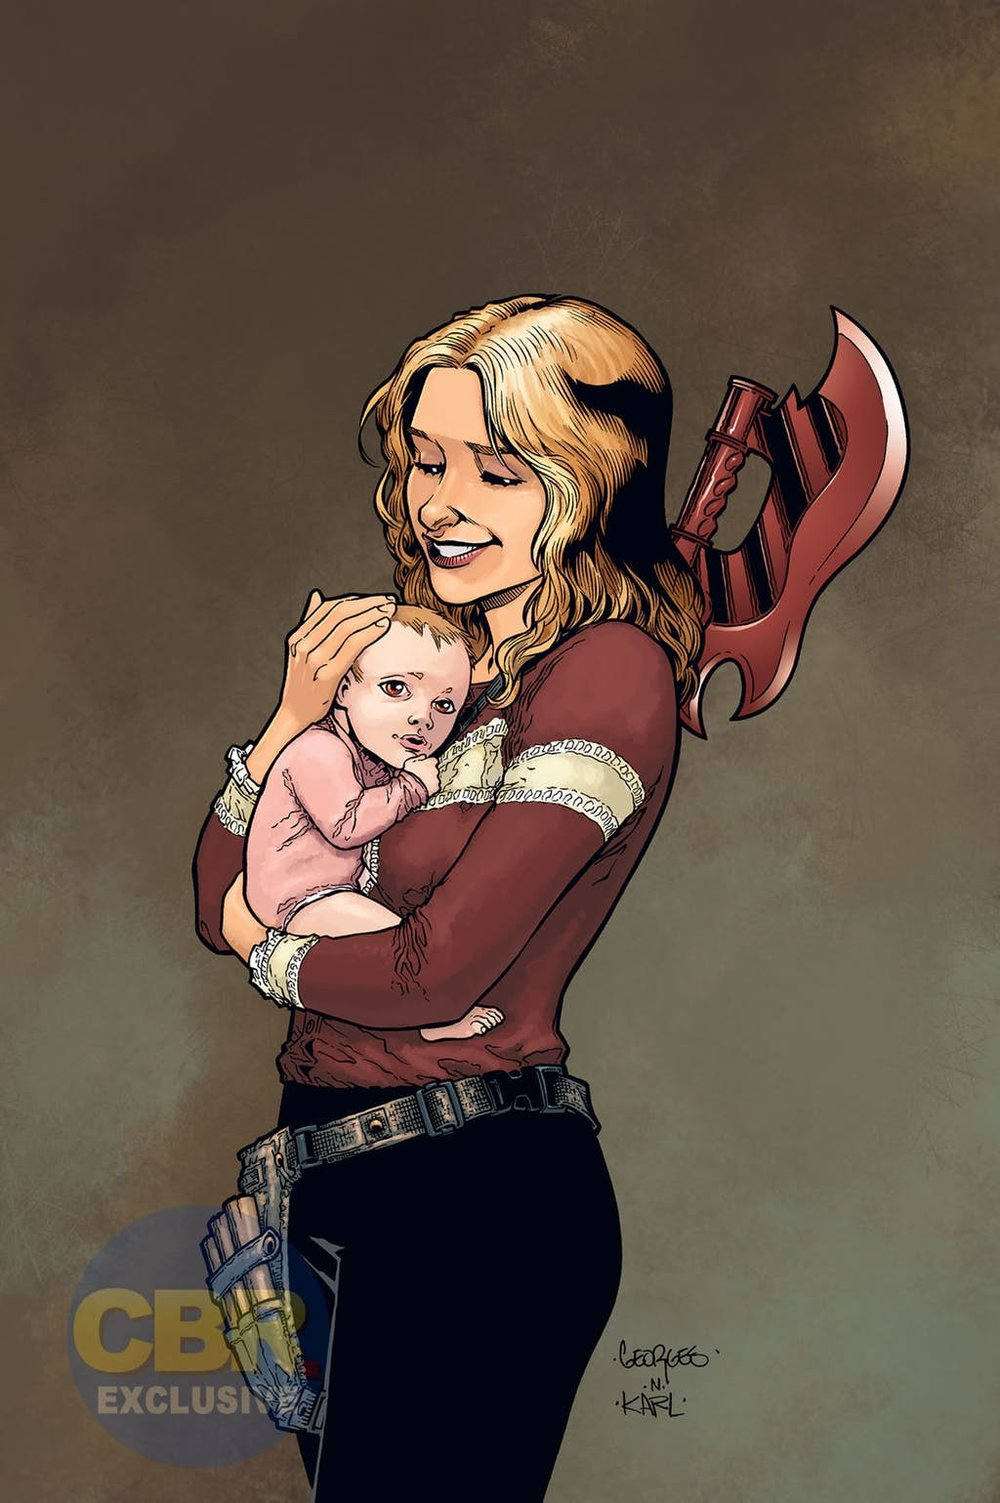 joss-whedon-returns-to-buffy-the-vampire-slayer-for-season-12-comic3